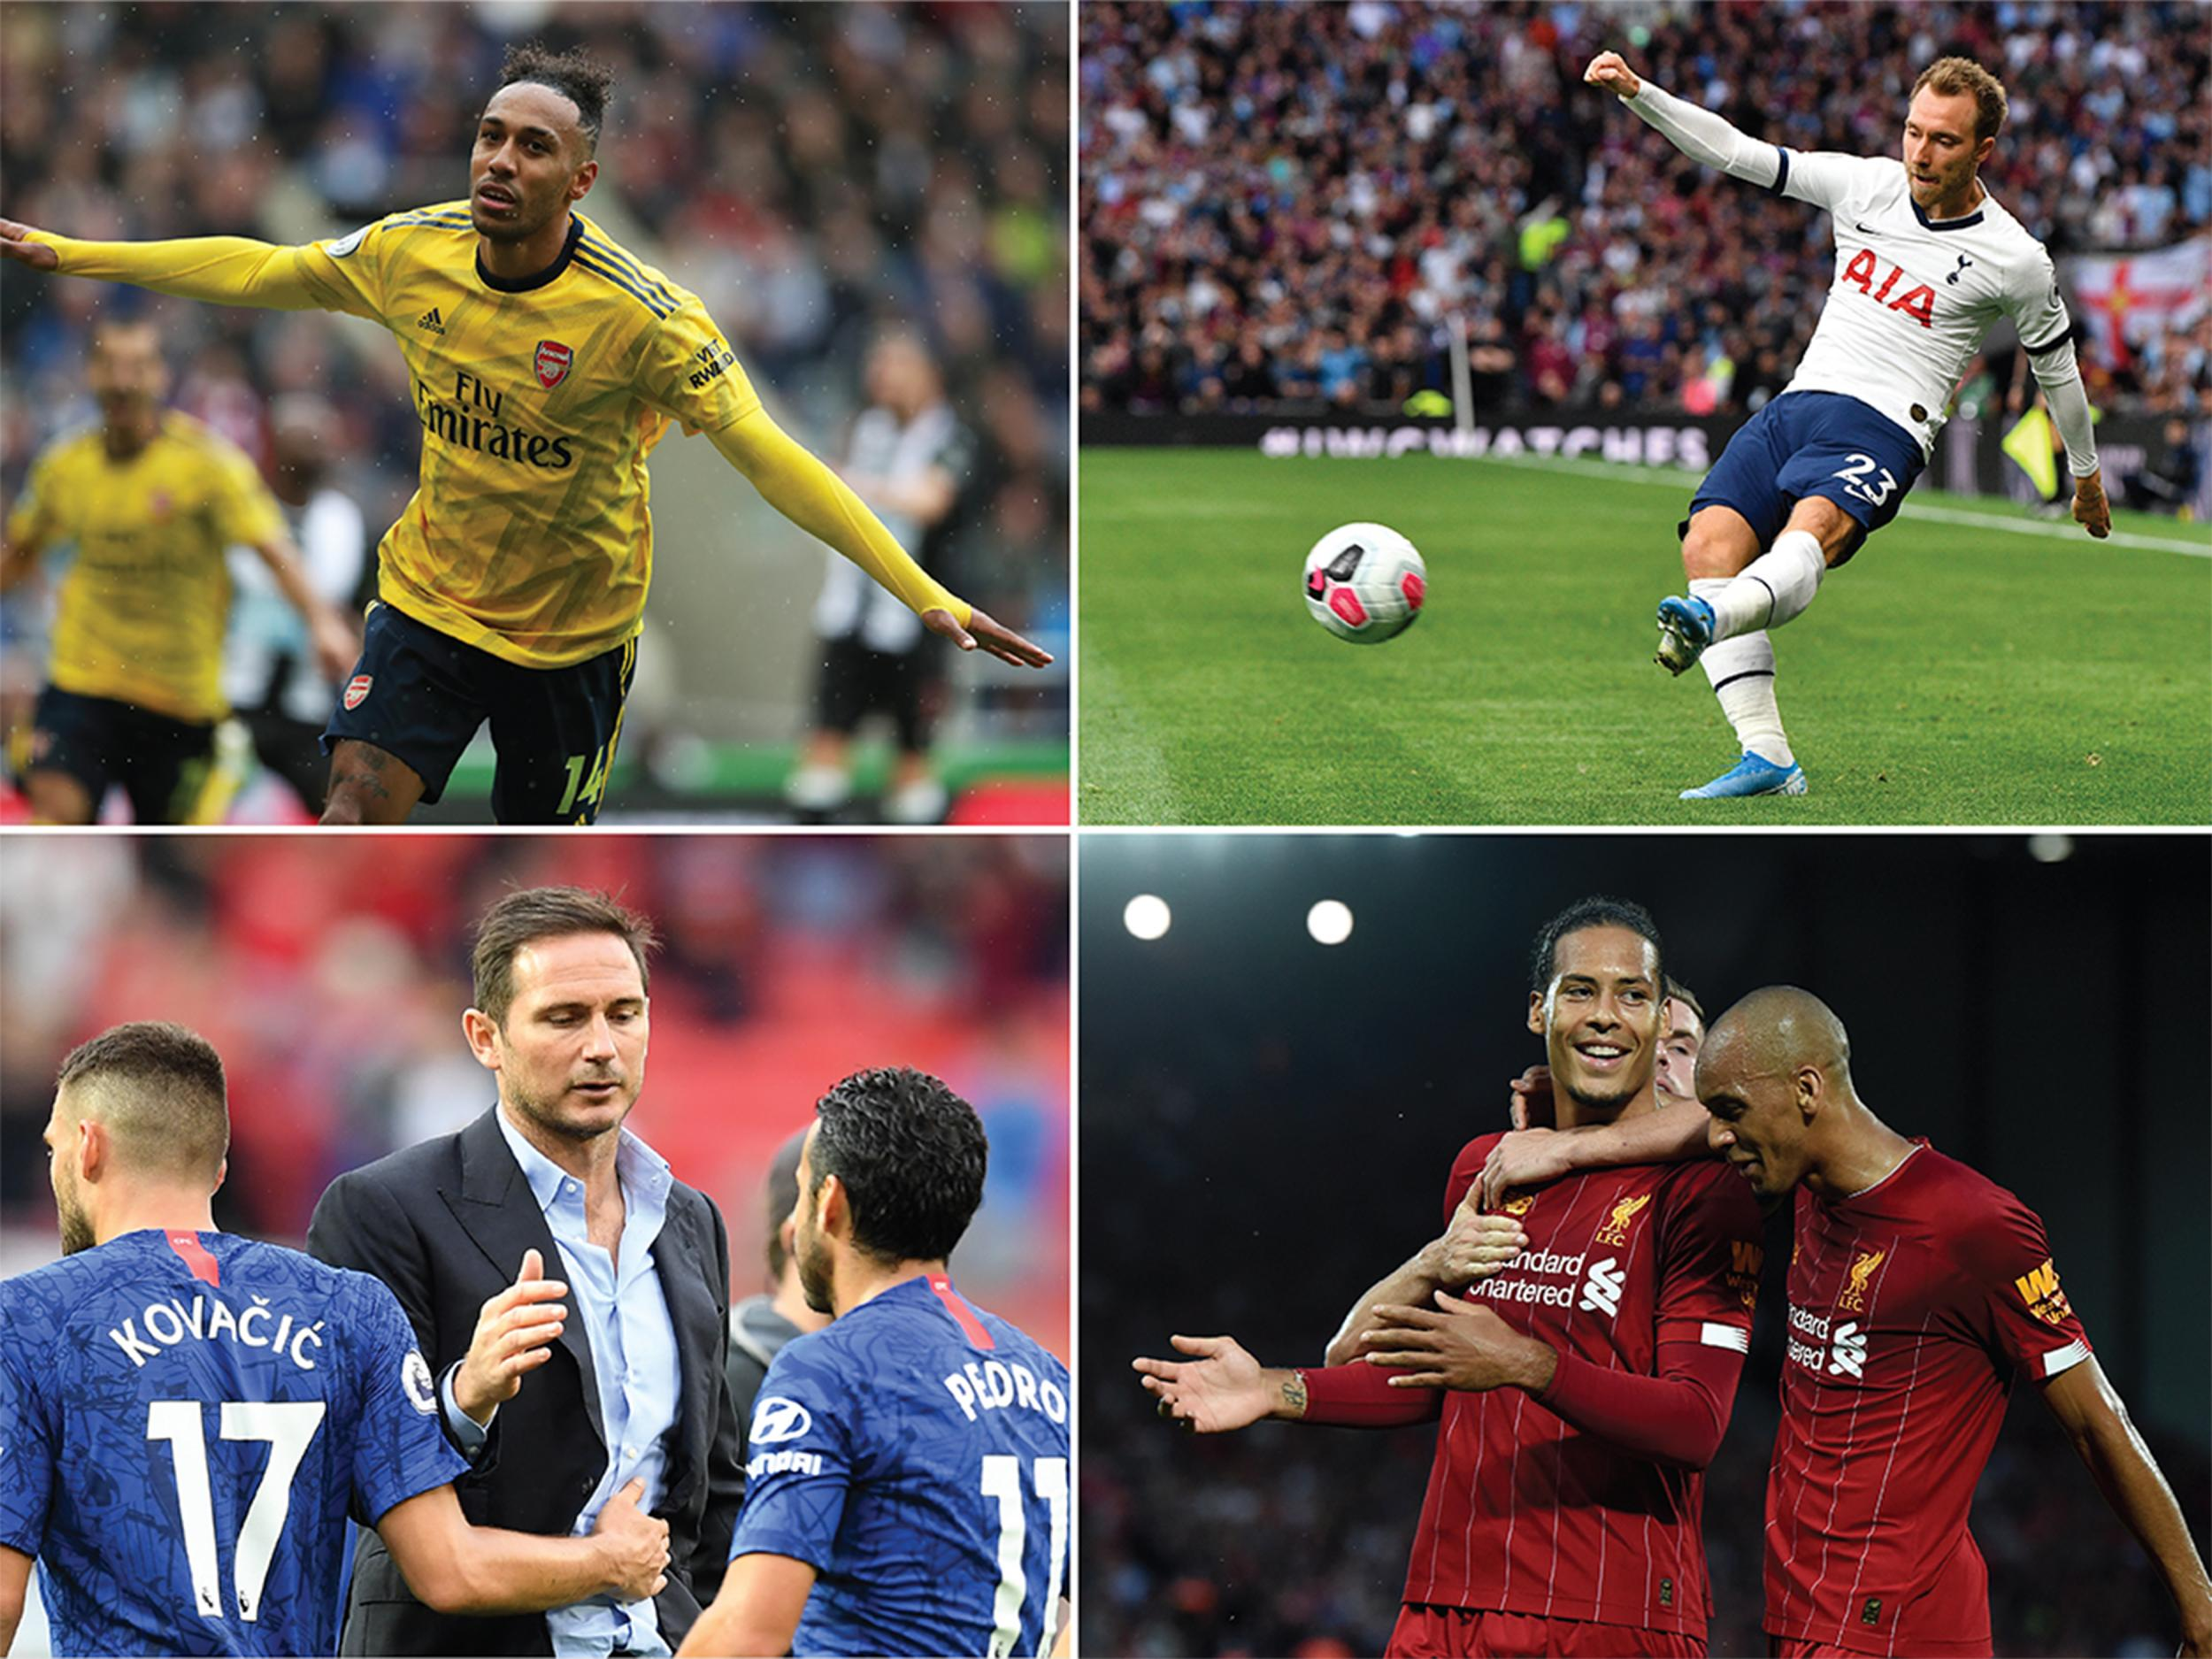 Premier League - latest news, breaking stories and comment - The